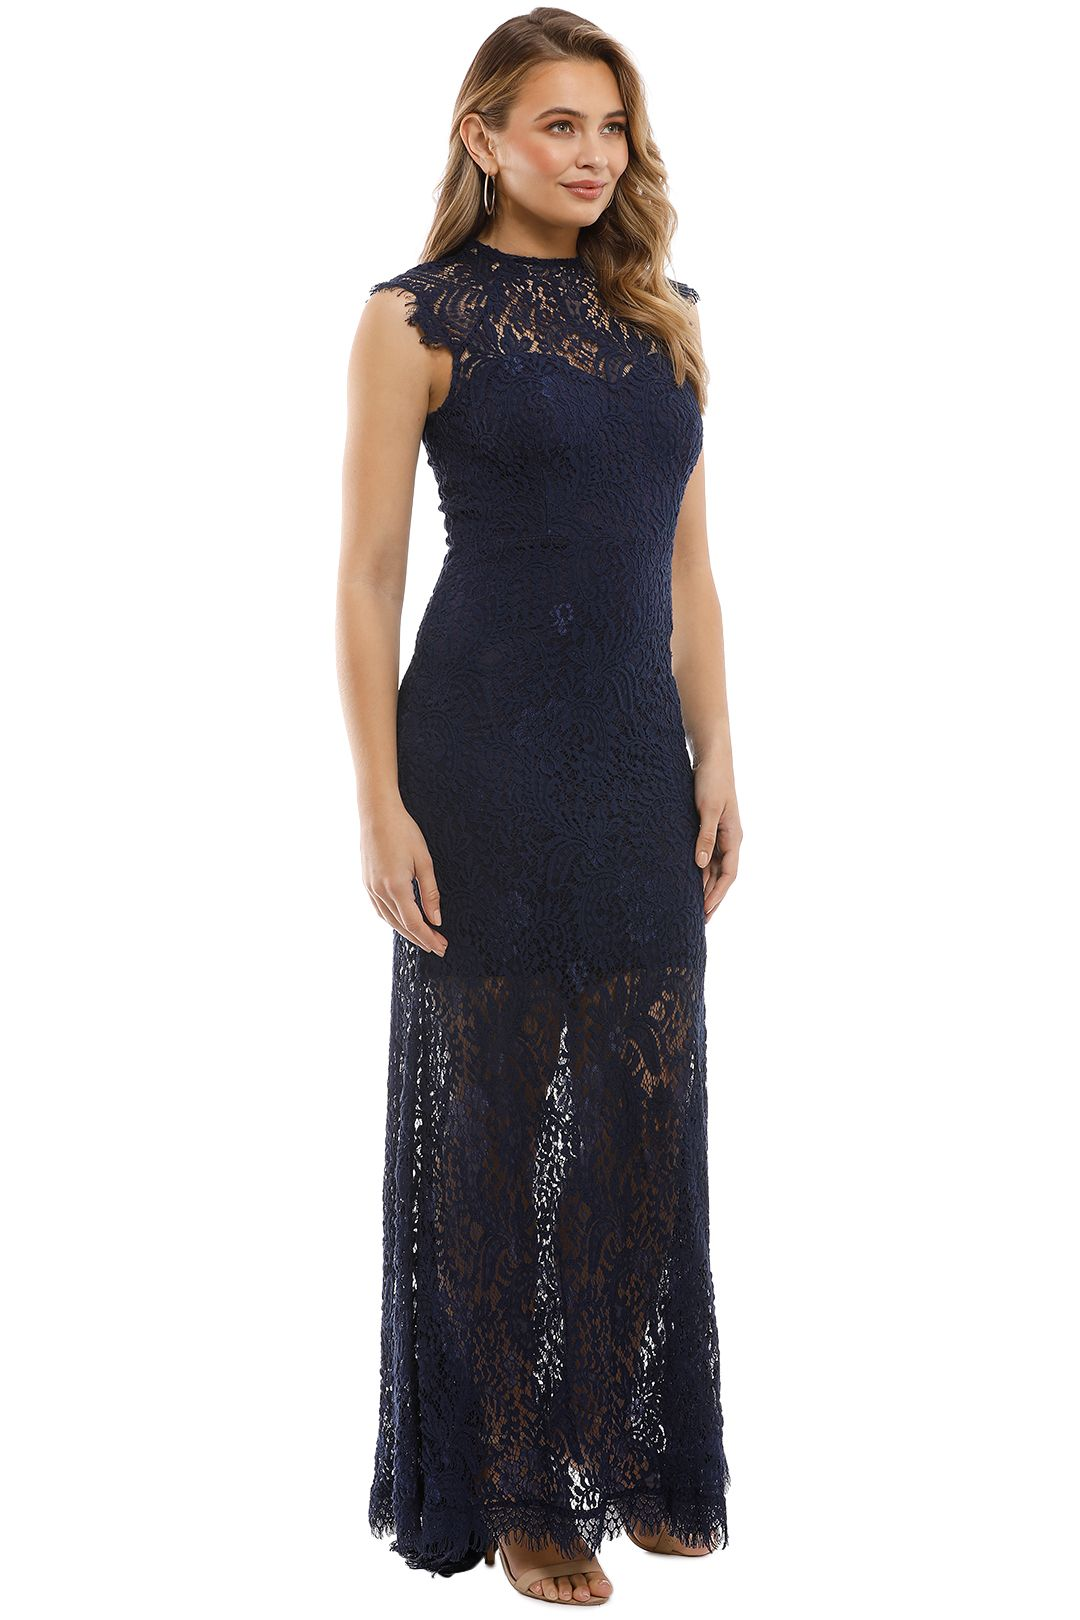 Elle Zeitoune - Demi Gown - Navy - Side